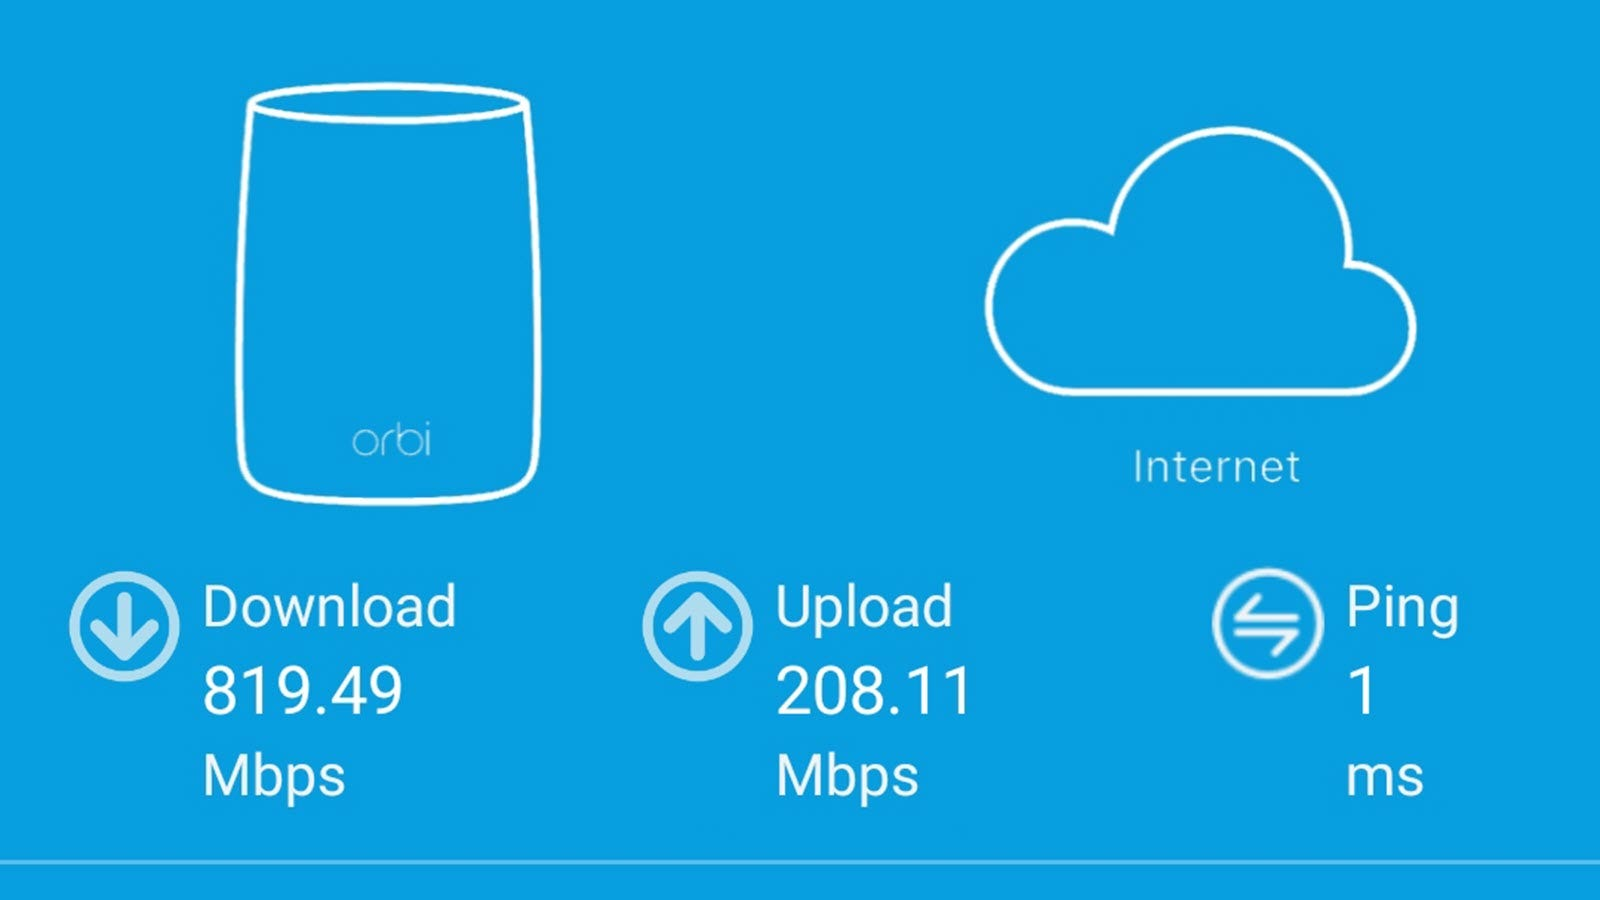 An internet speed test showing 820 mbps down and 200 up.